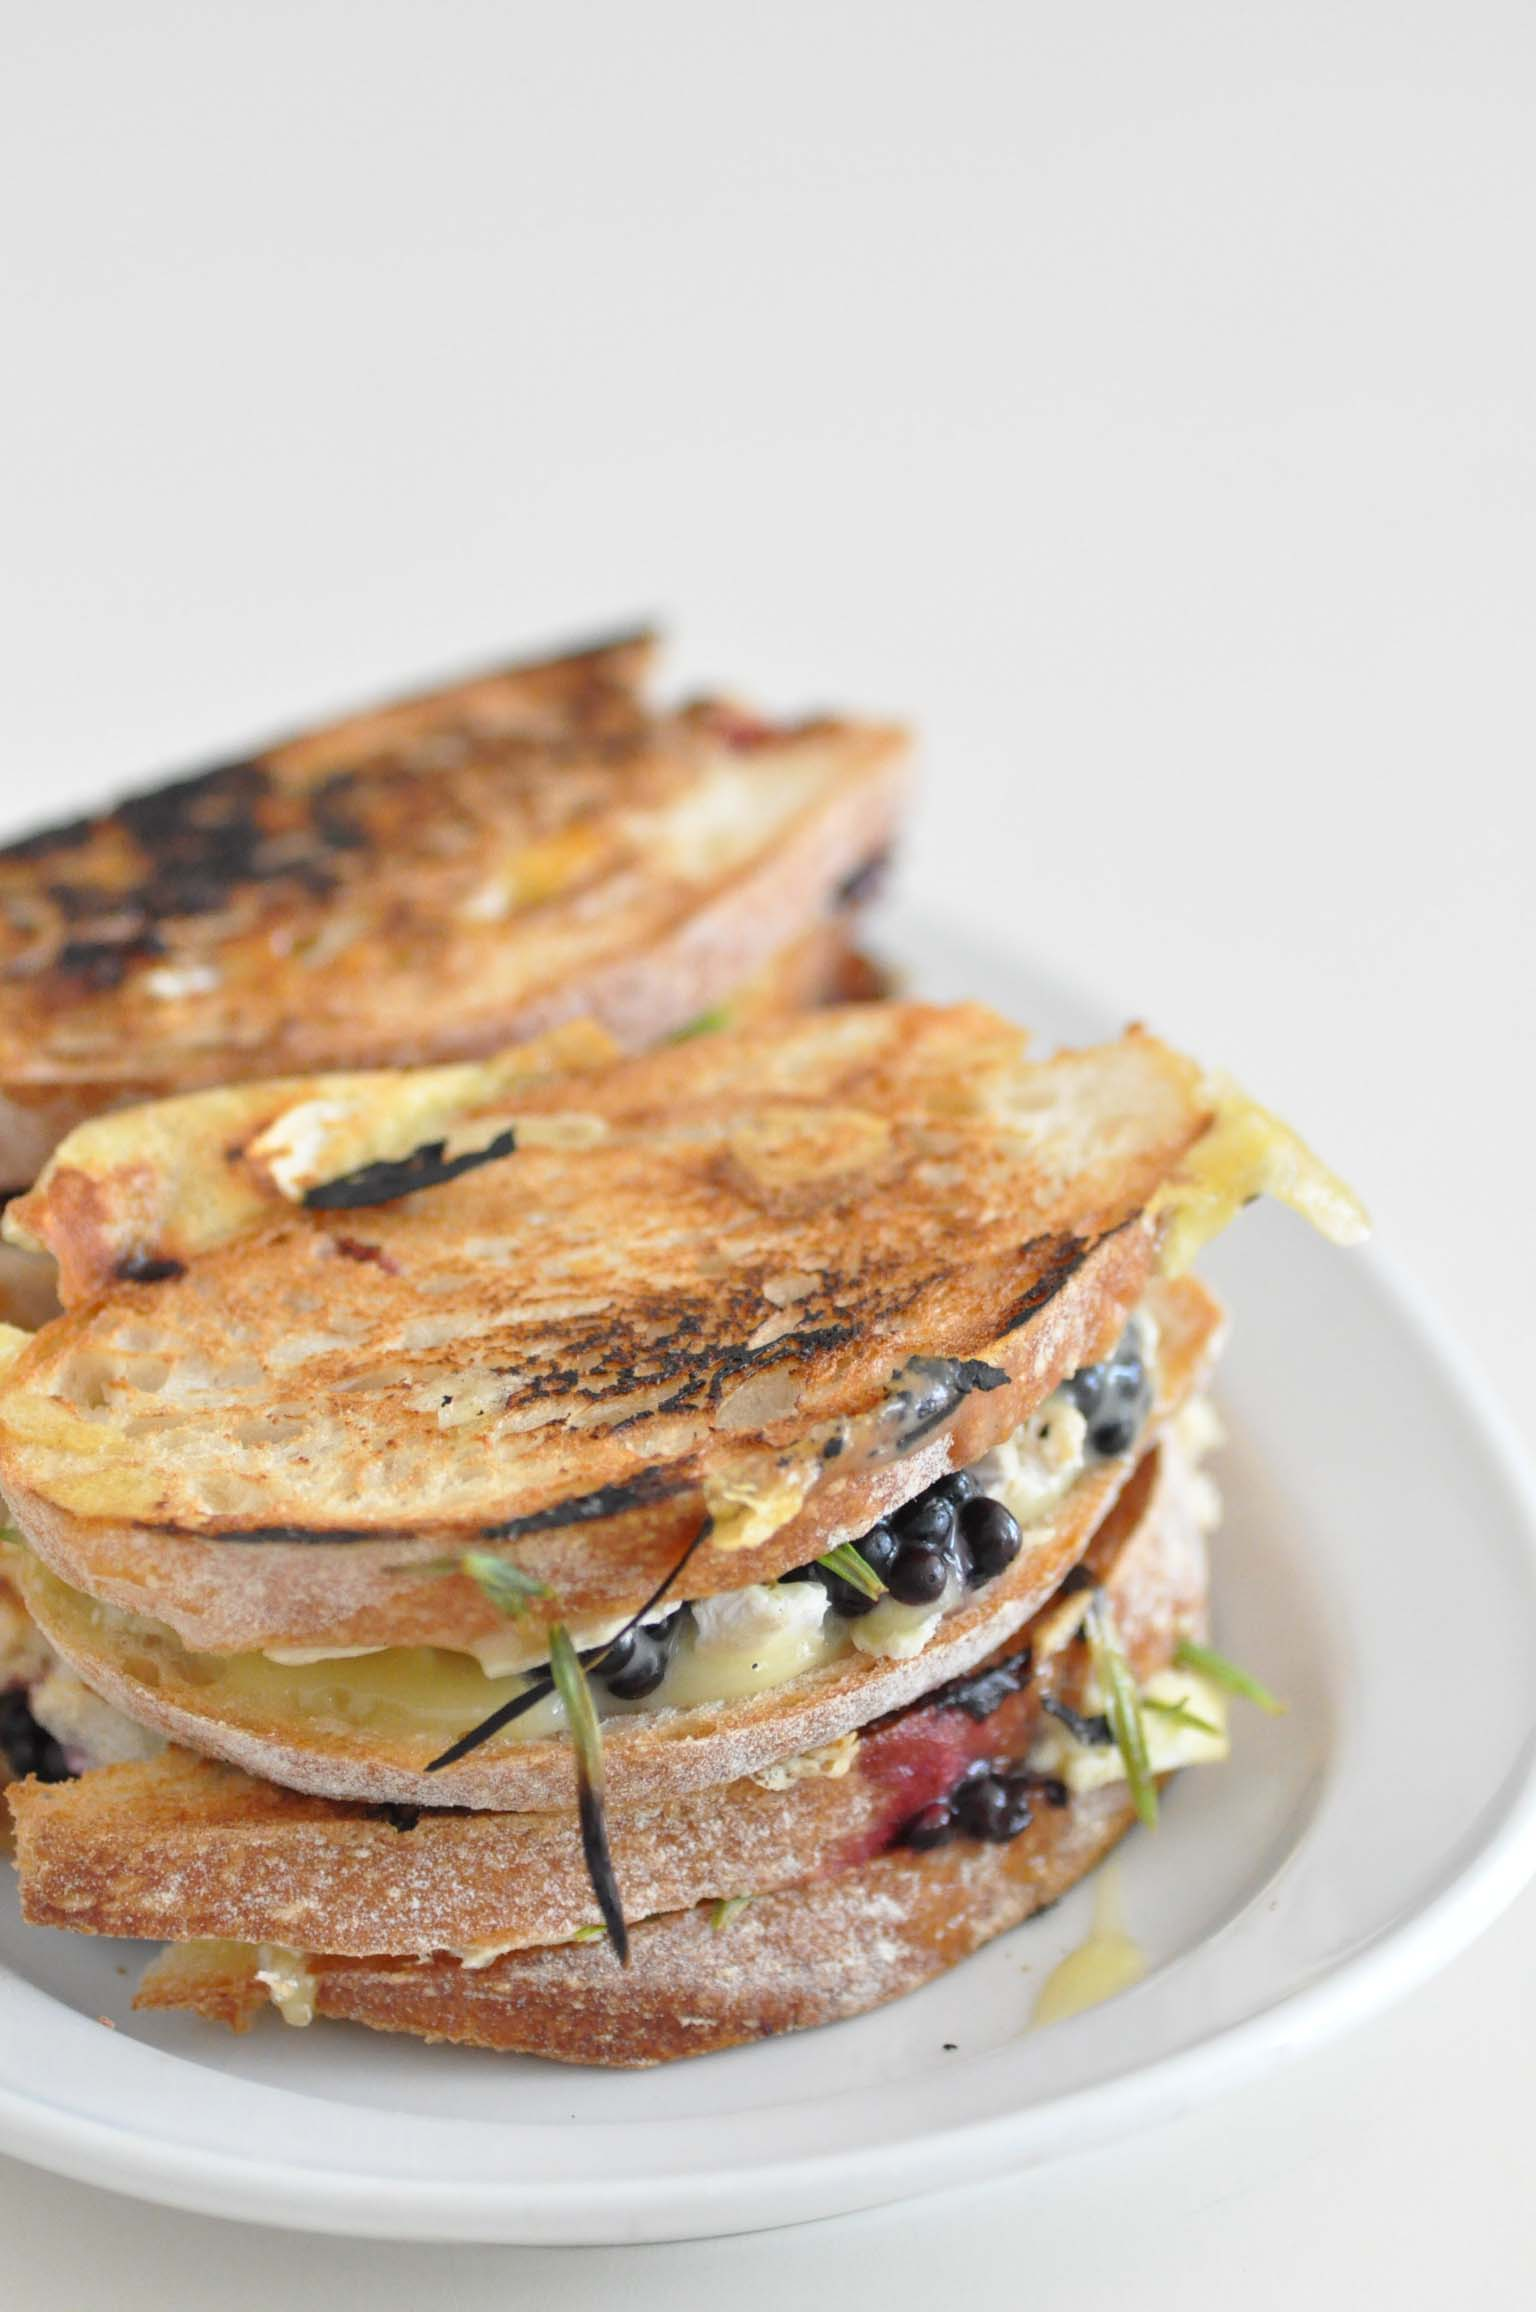 blackberry grilled cheese sandwich_bearbeitet-1